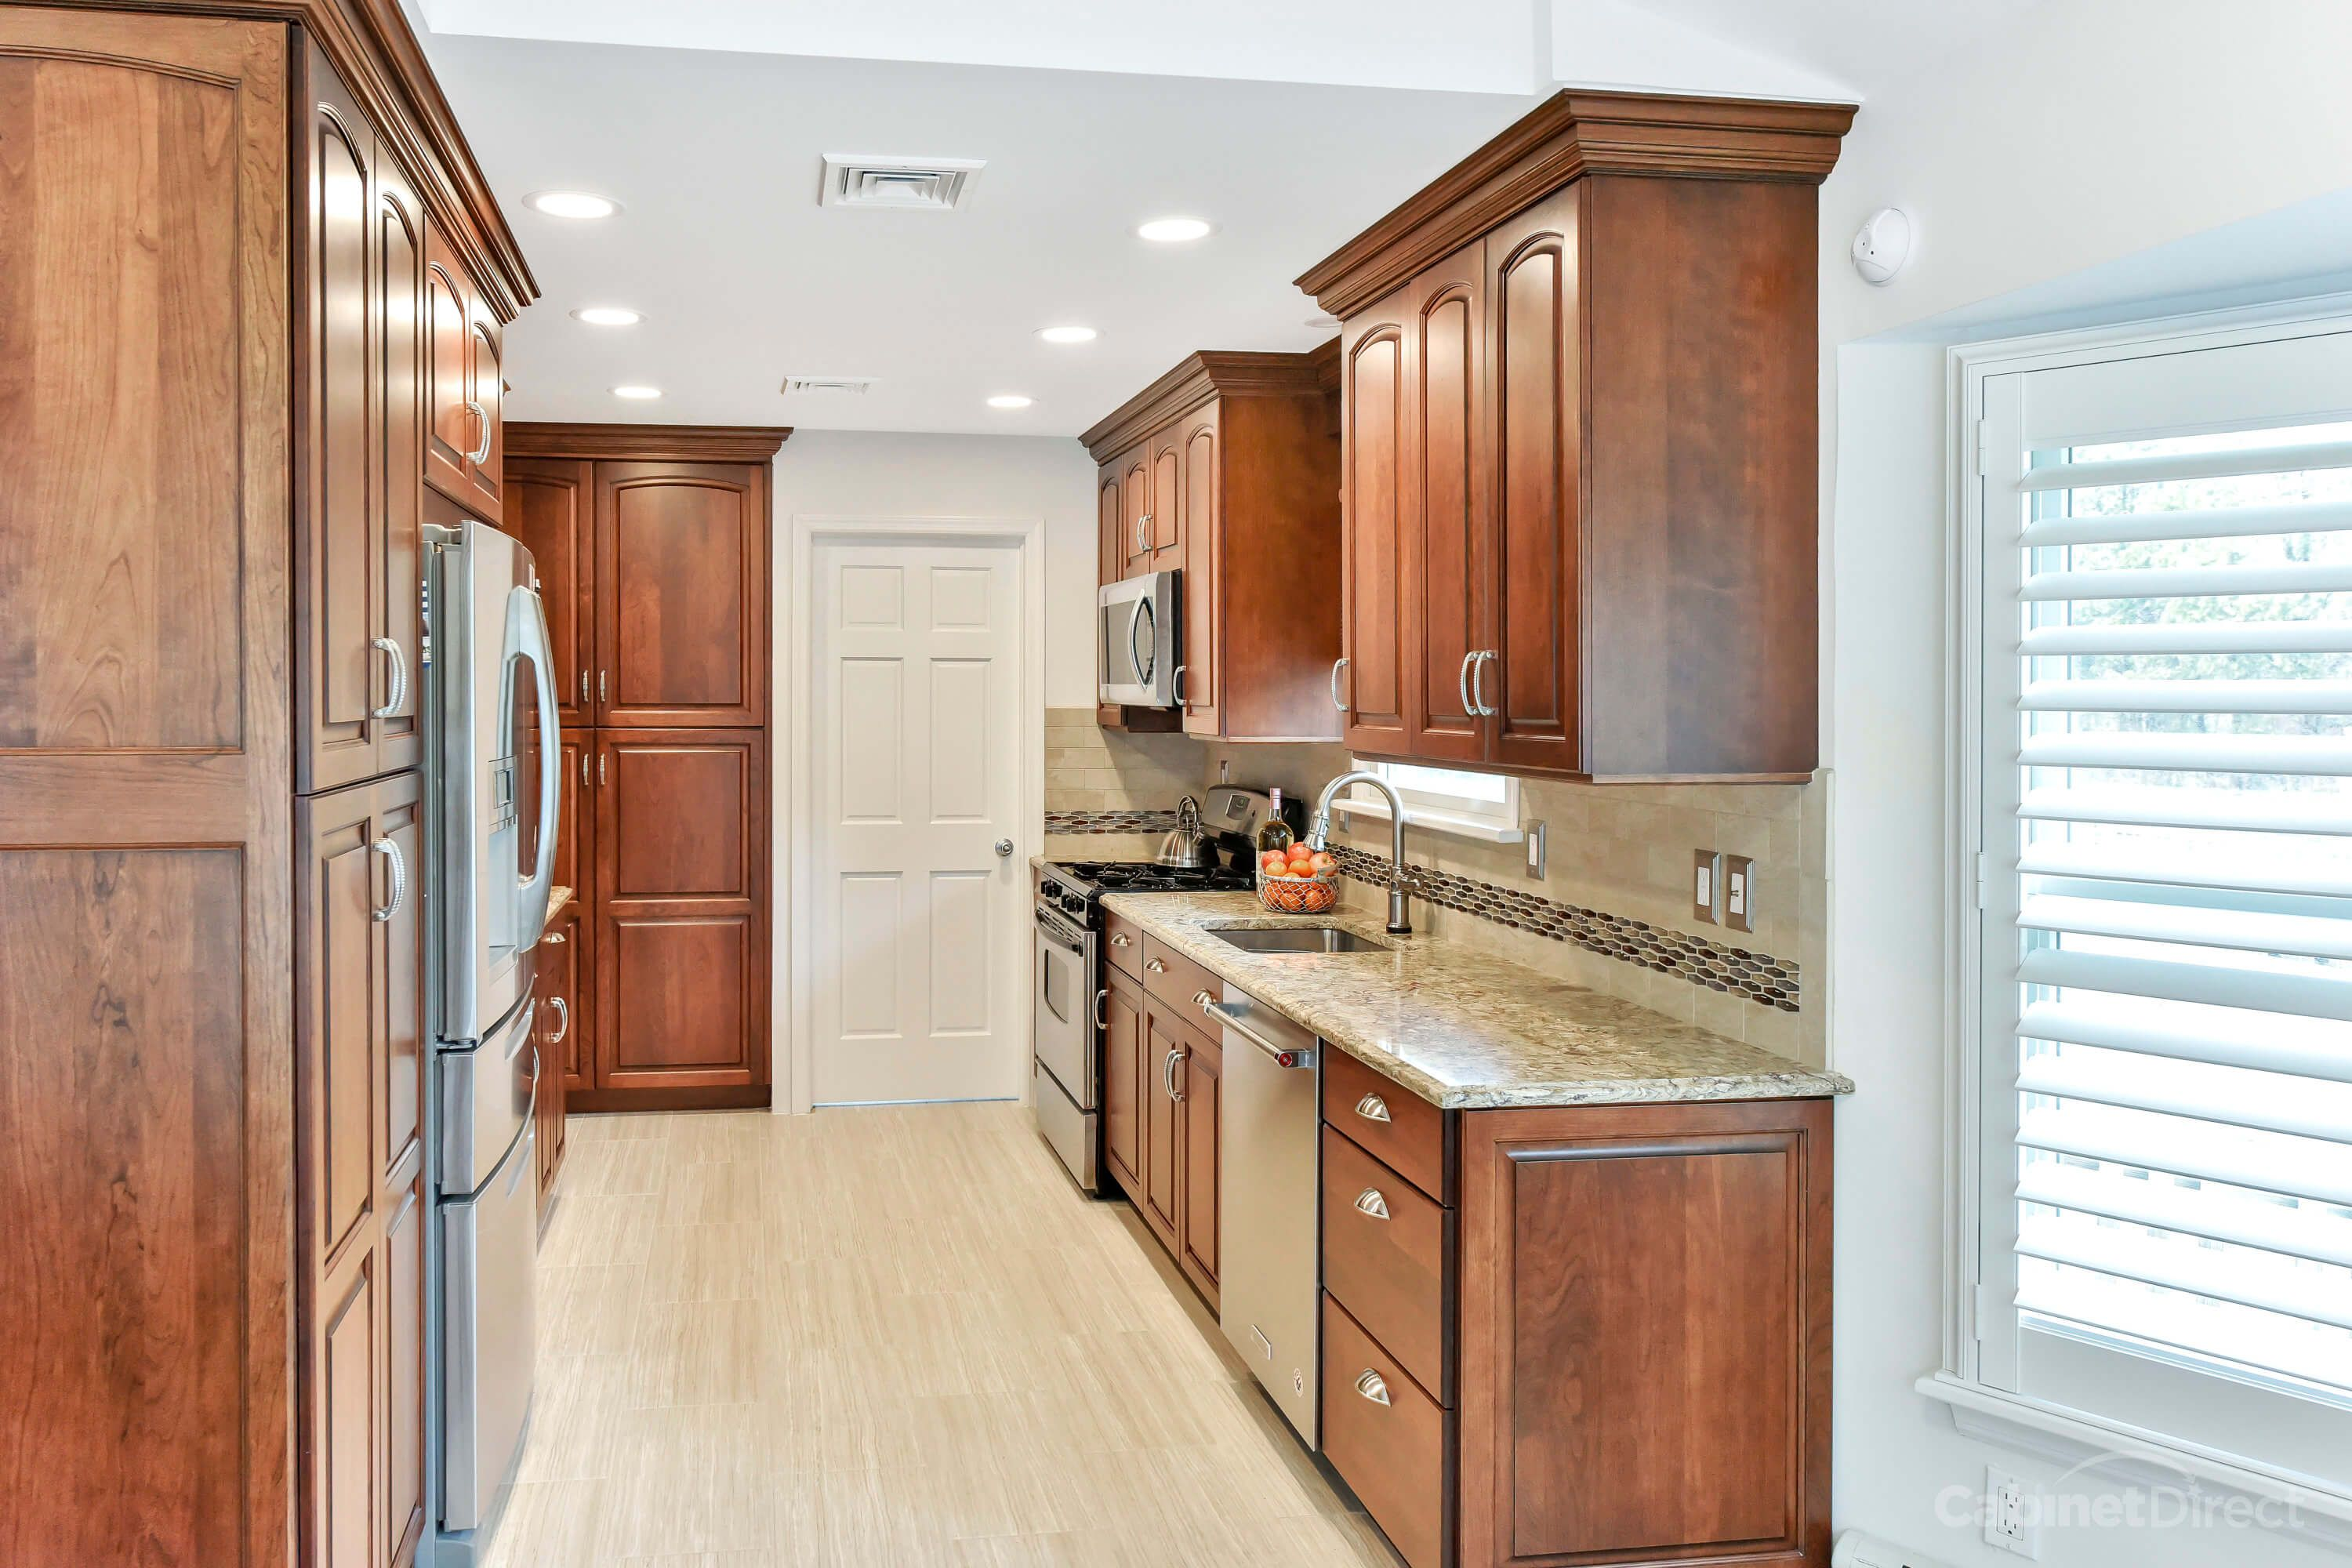 Ultracraft Fairlawn Arch Kitchen Cabinet Direct Online Kitchen Cabinets Best Kitchen Cabinets Kitchen Design